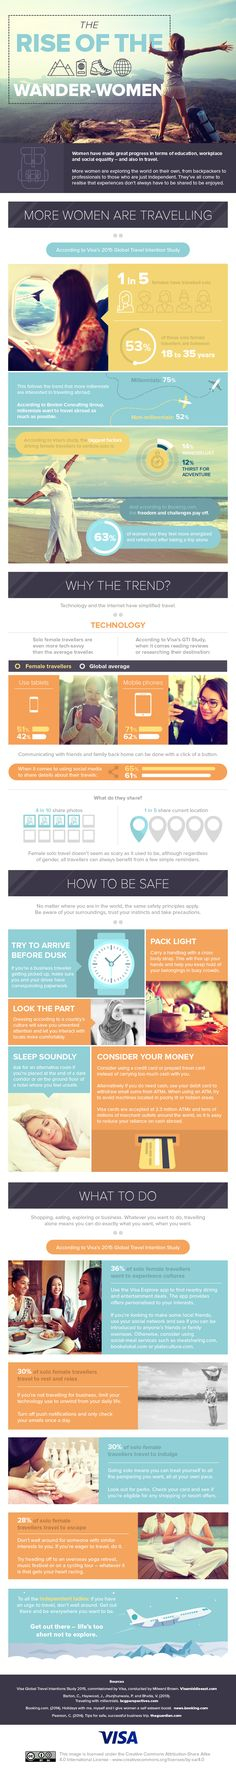 Infographic: Everything you need to know about female travel